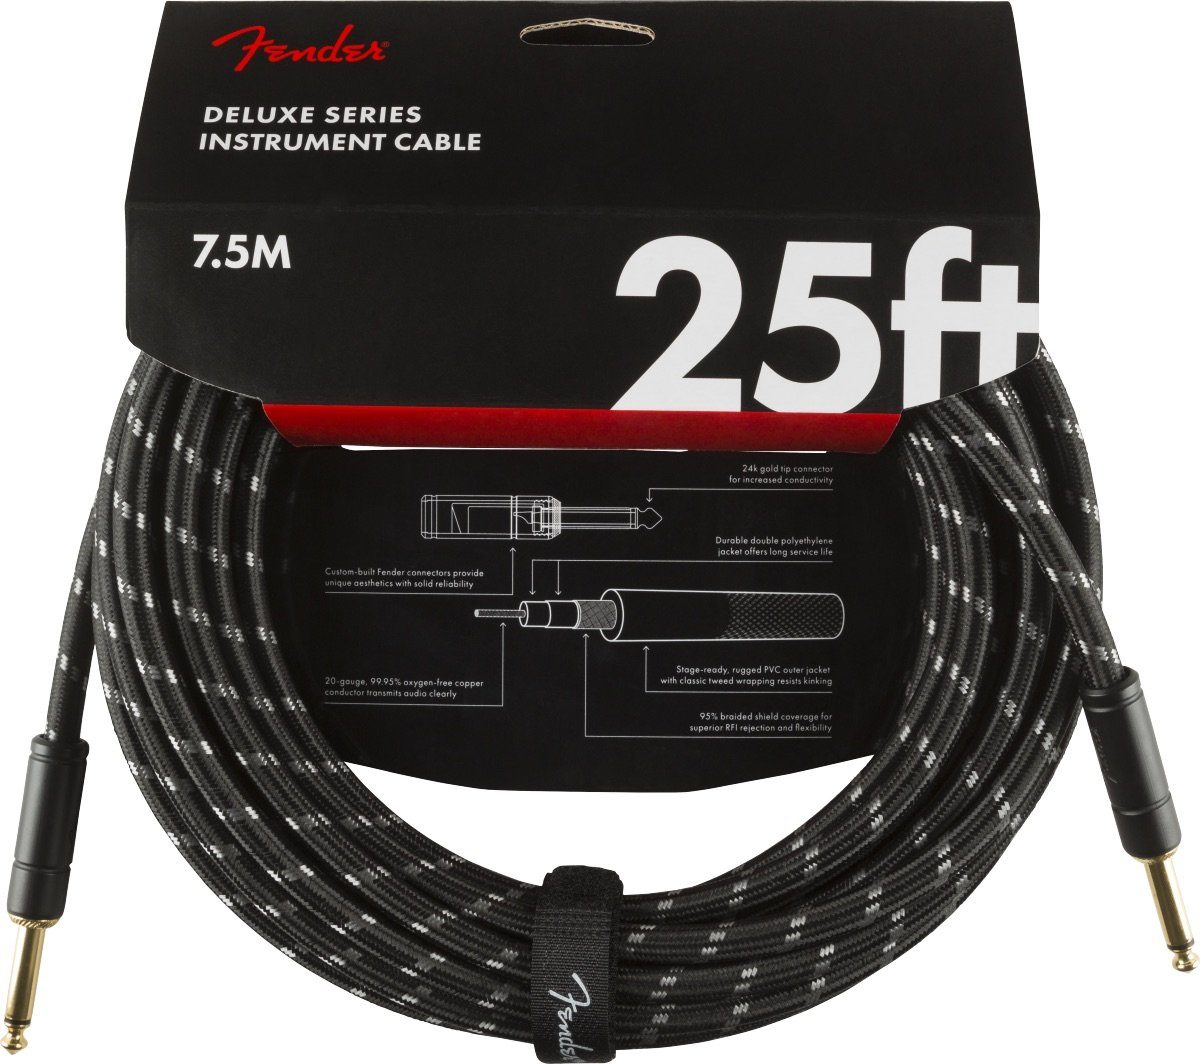 Fender Black Tweed 7.5M Instrument Cable